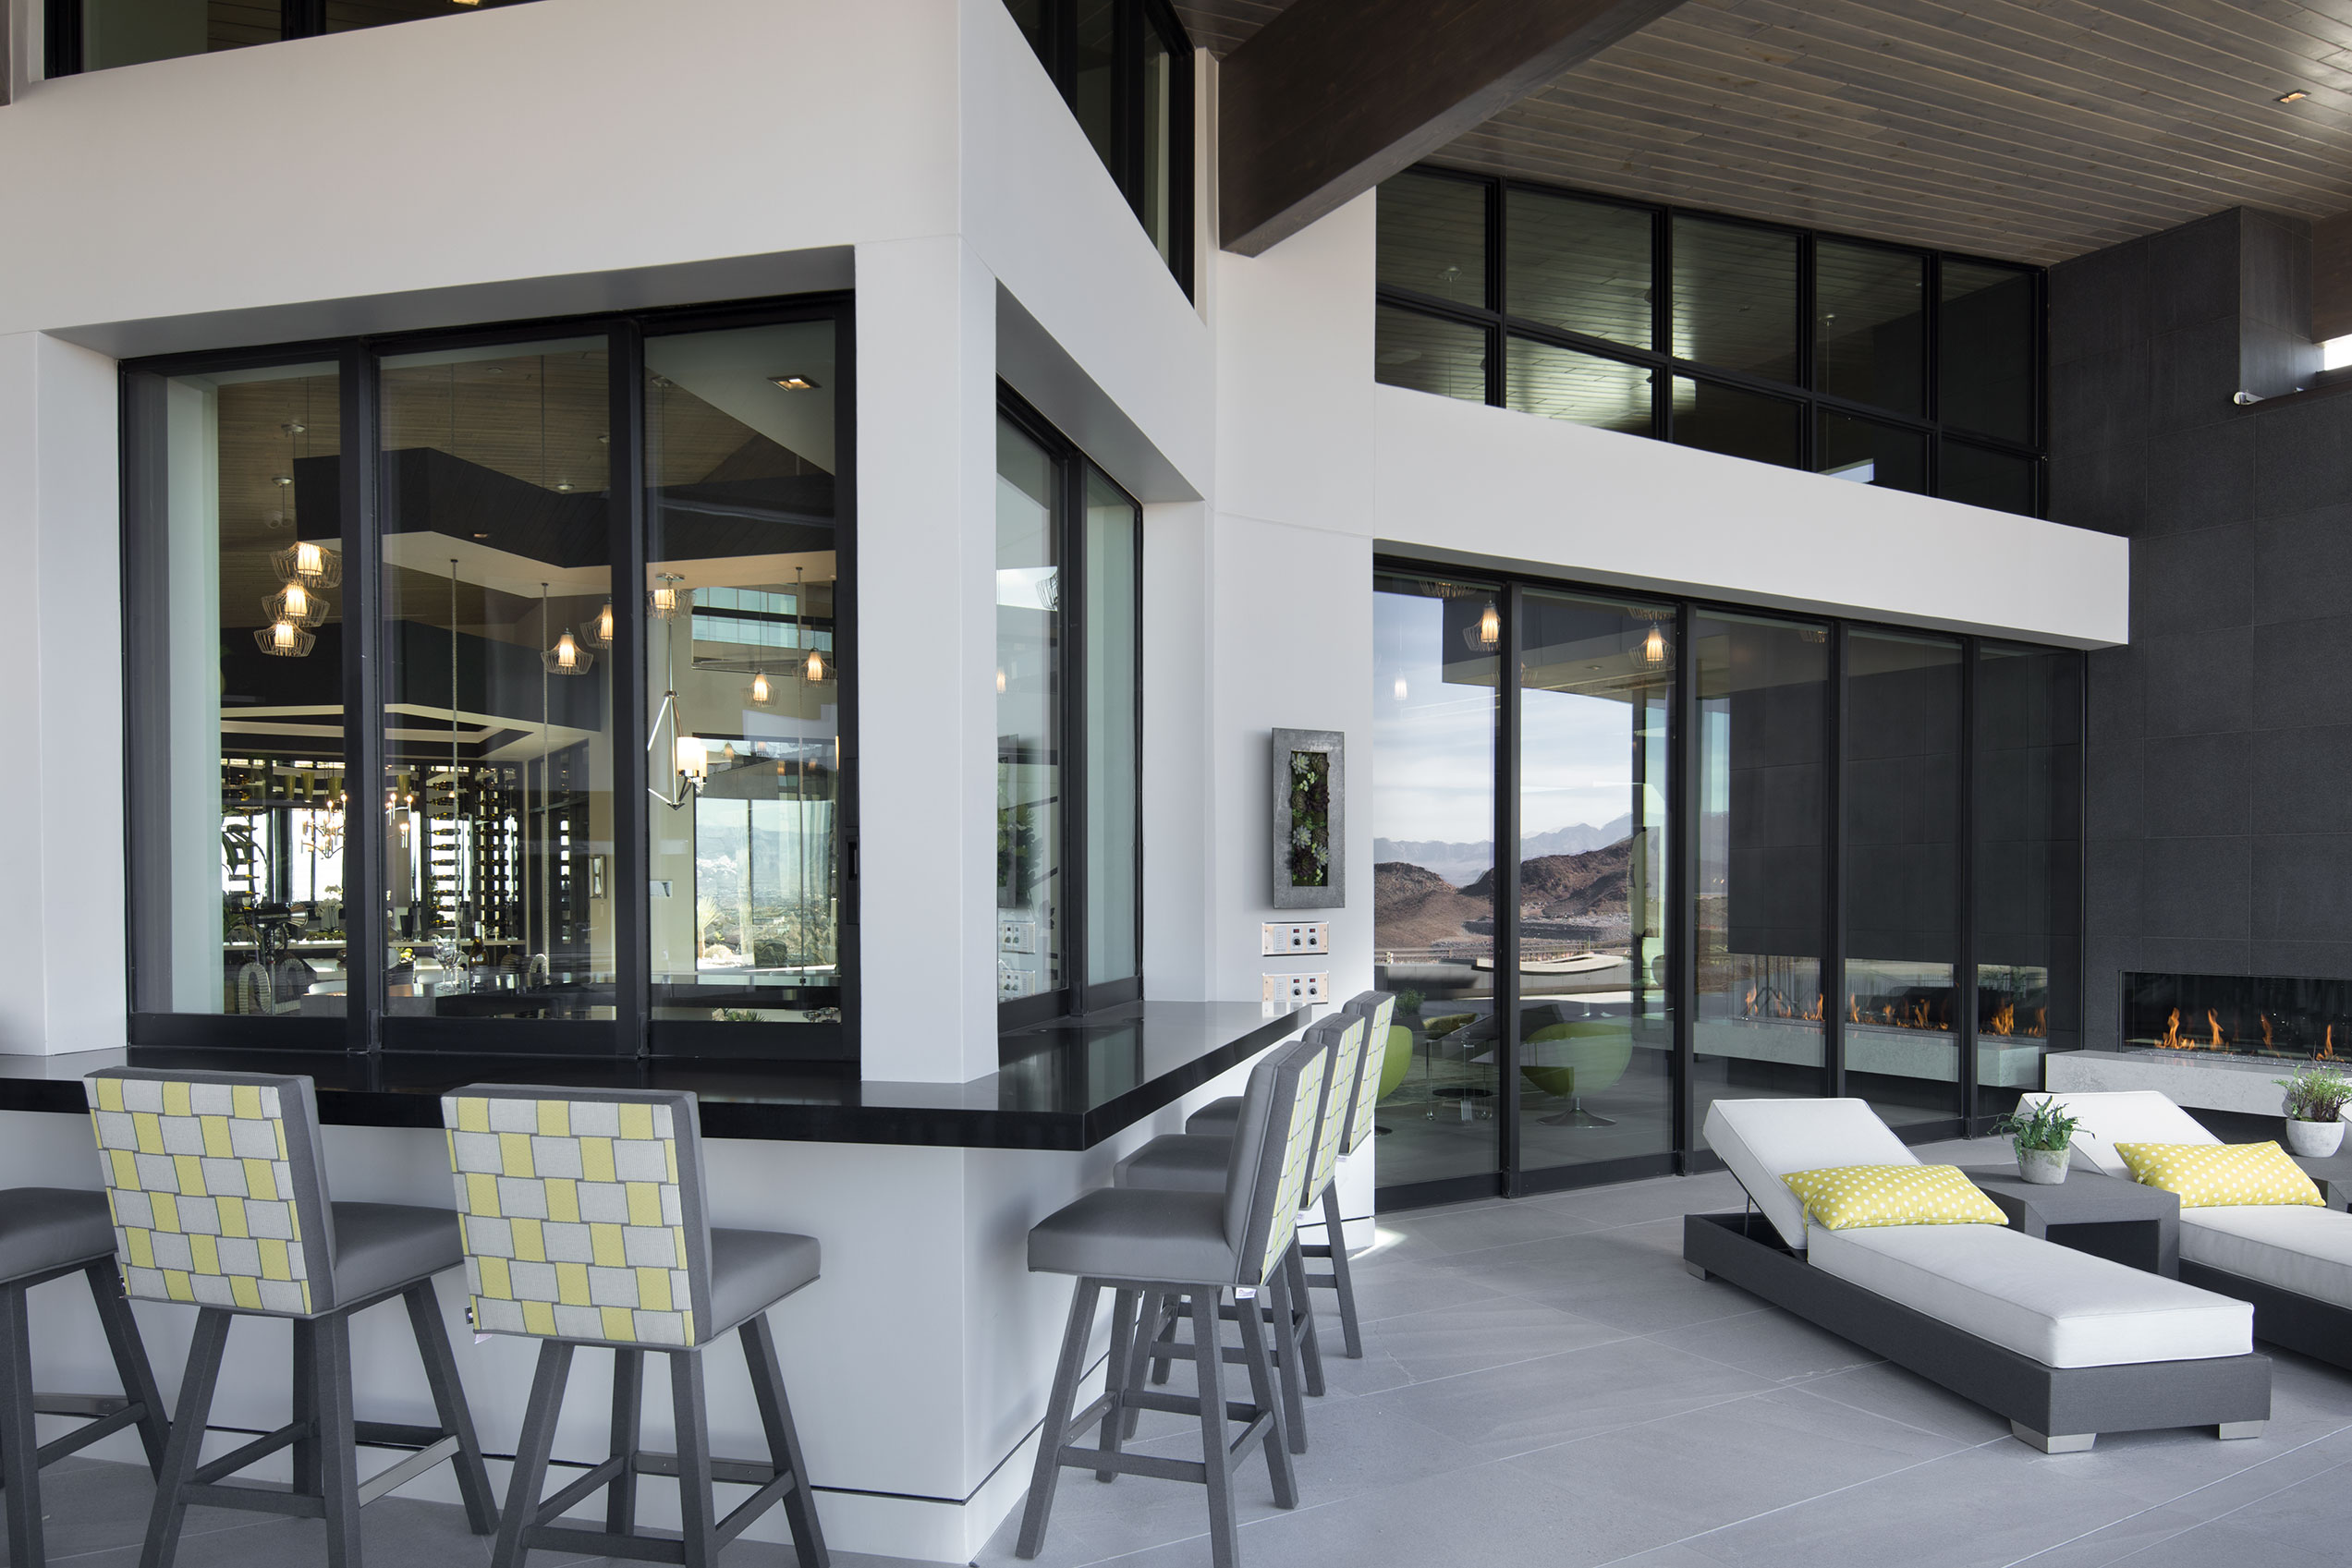 The back side of the home features an indoor-outdoor wet bar flanked on either side by huge Series 7600 Multi-Slide Doors.